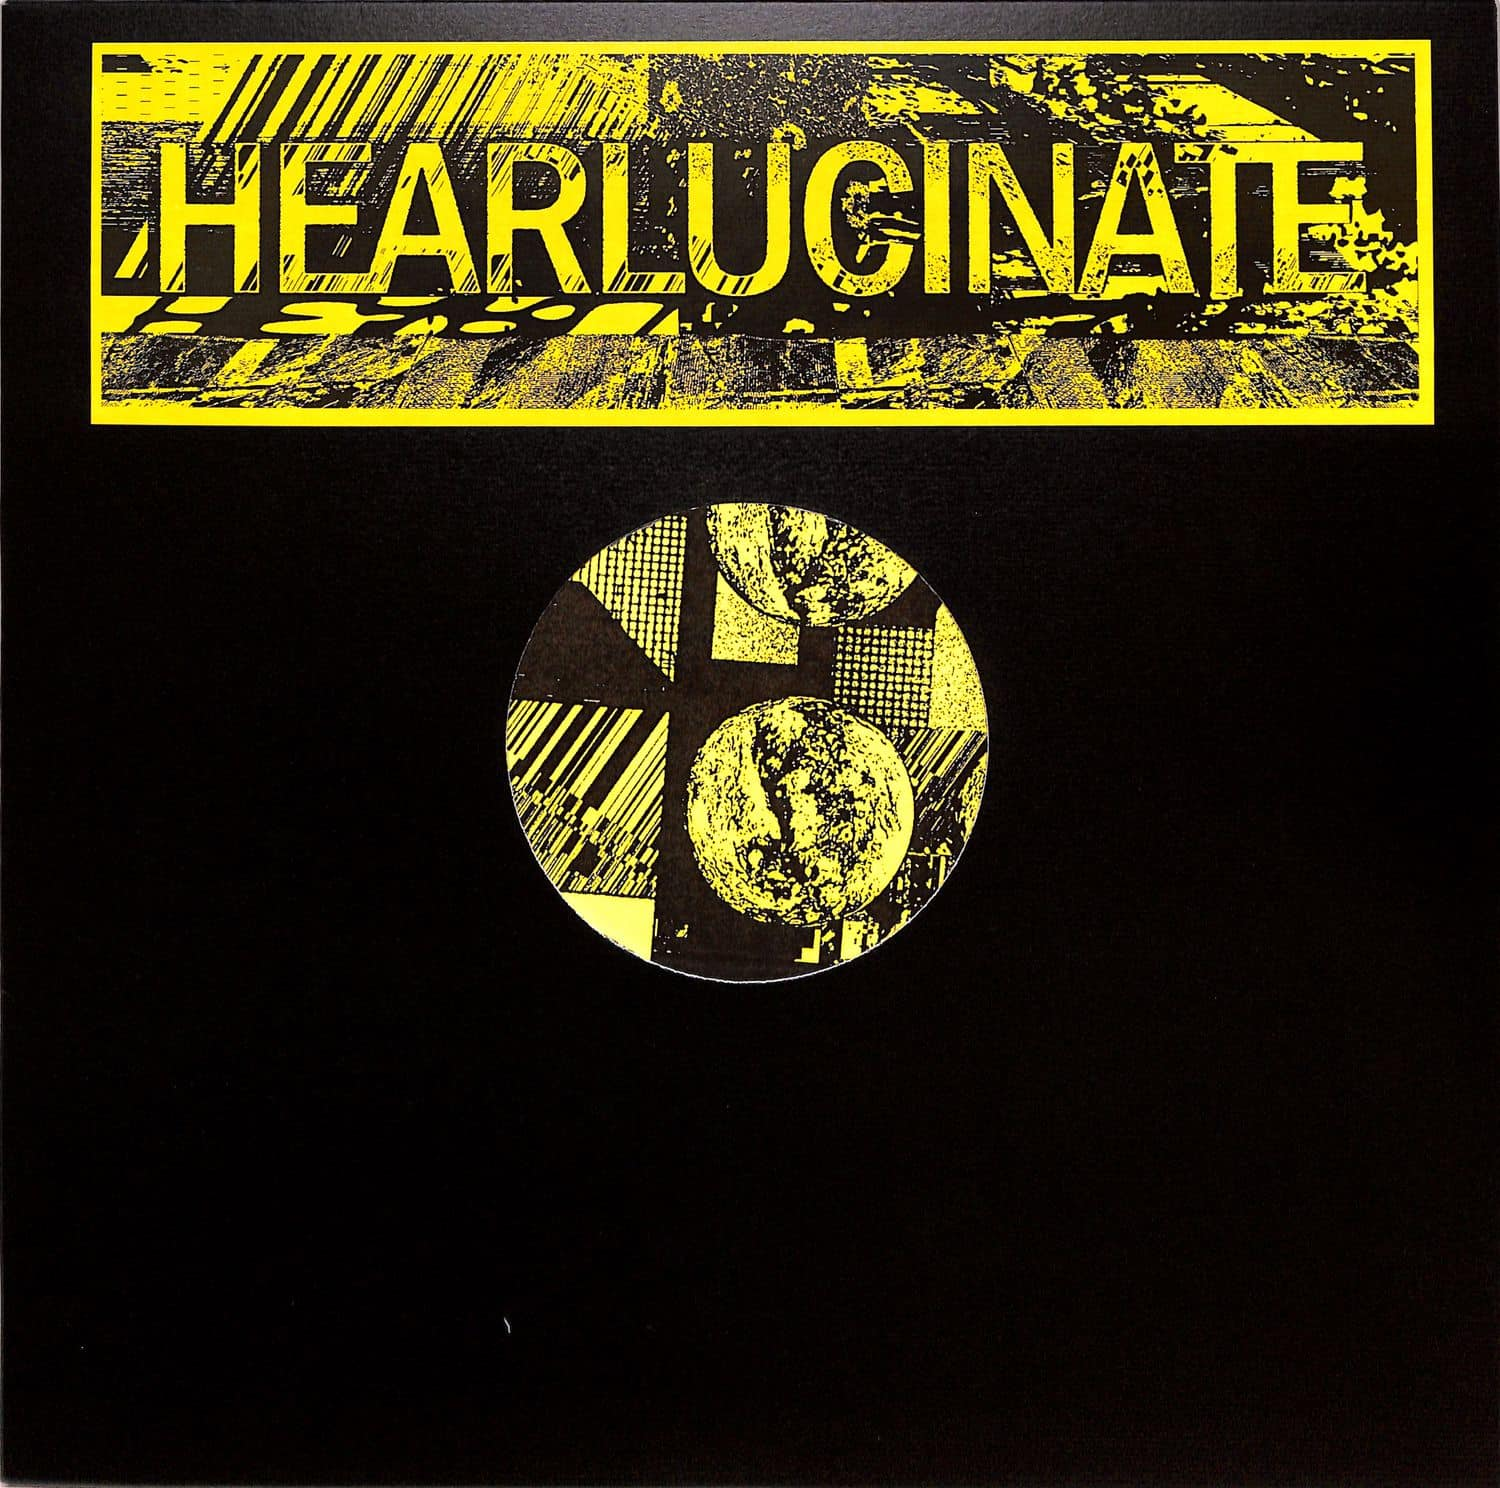 Ron Obvious / Tristan Da Cunha / Freakenstein - HEARLUCINATE 002